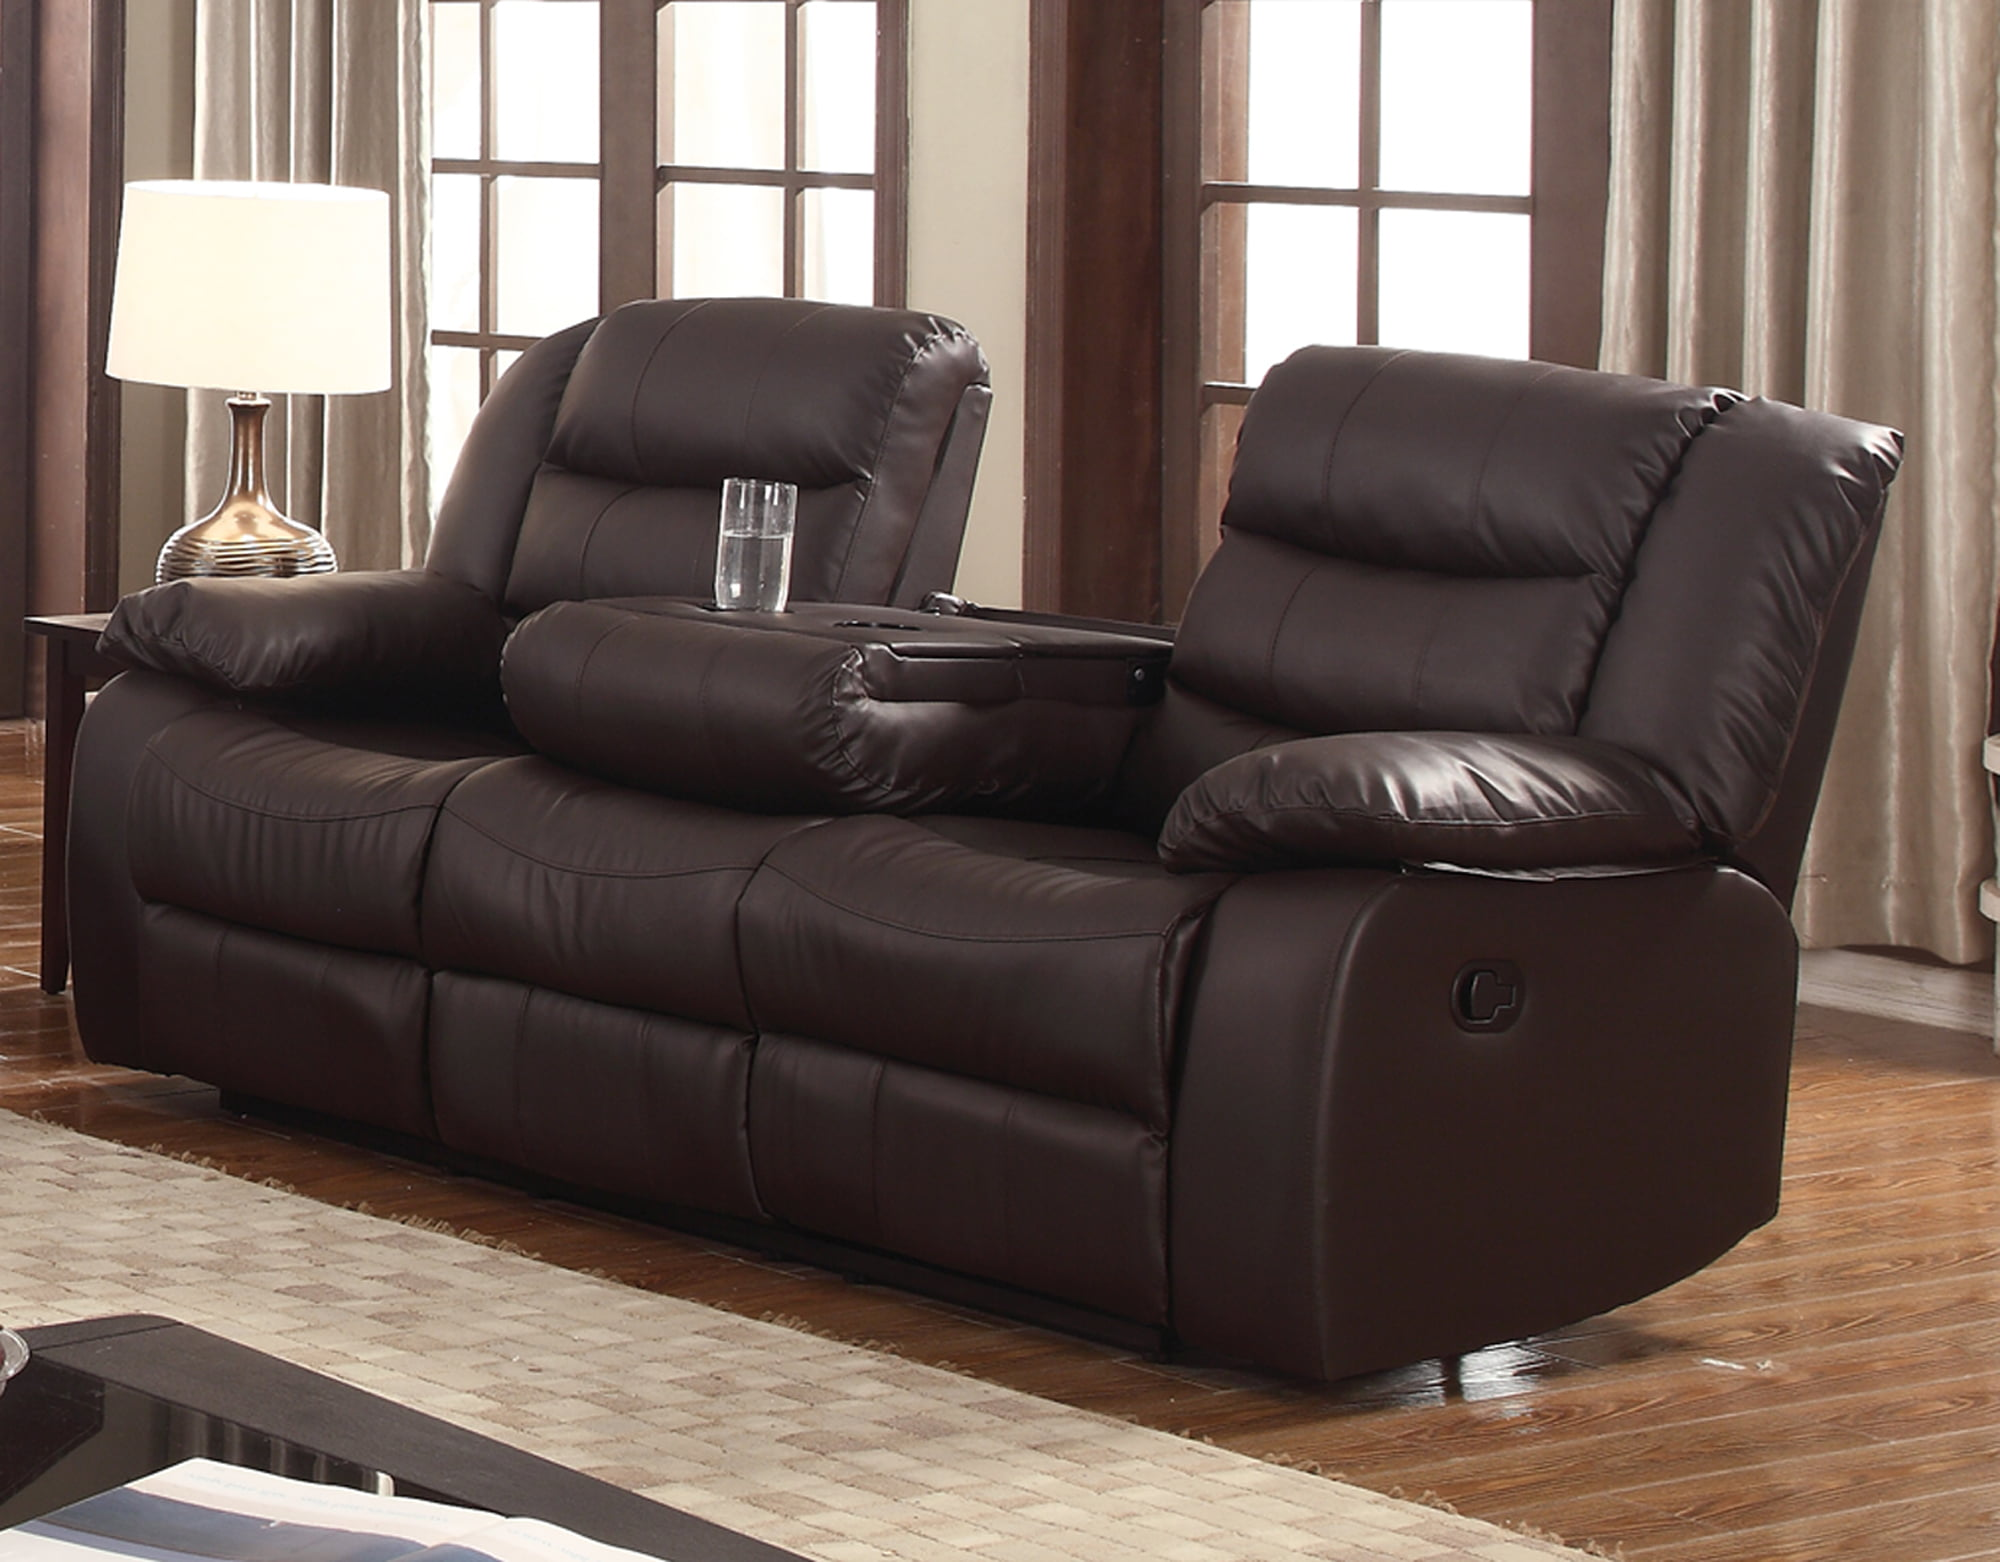 Layla Dark Brown Faux Leather Reclining Sofa With Drop Down Tea Table    Walmart.com Part 66